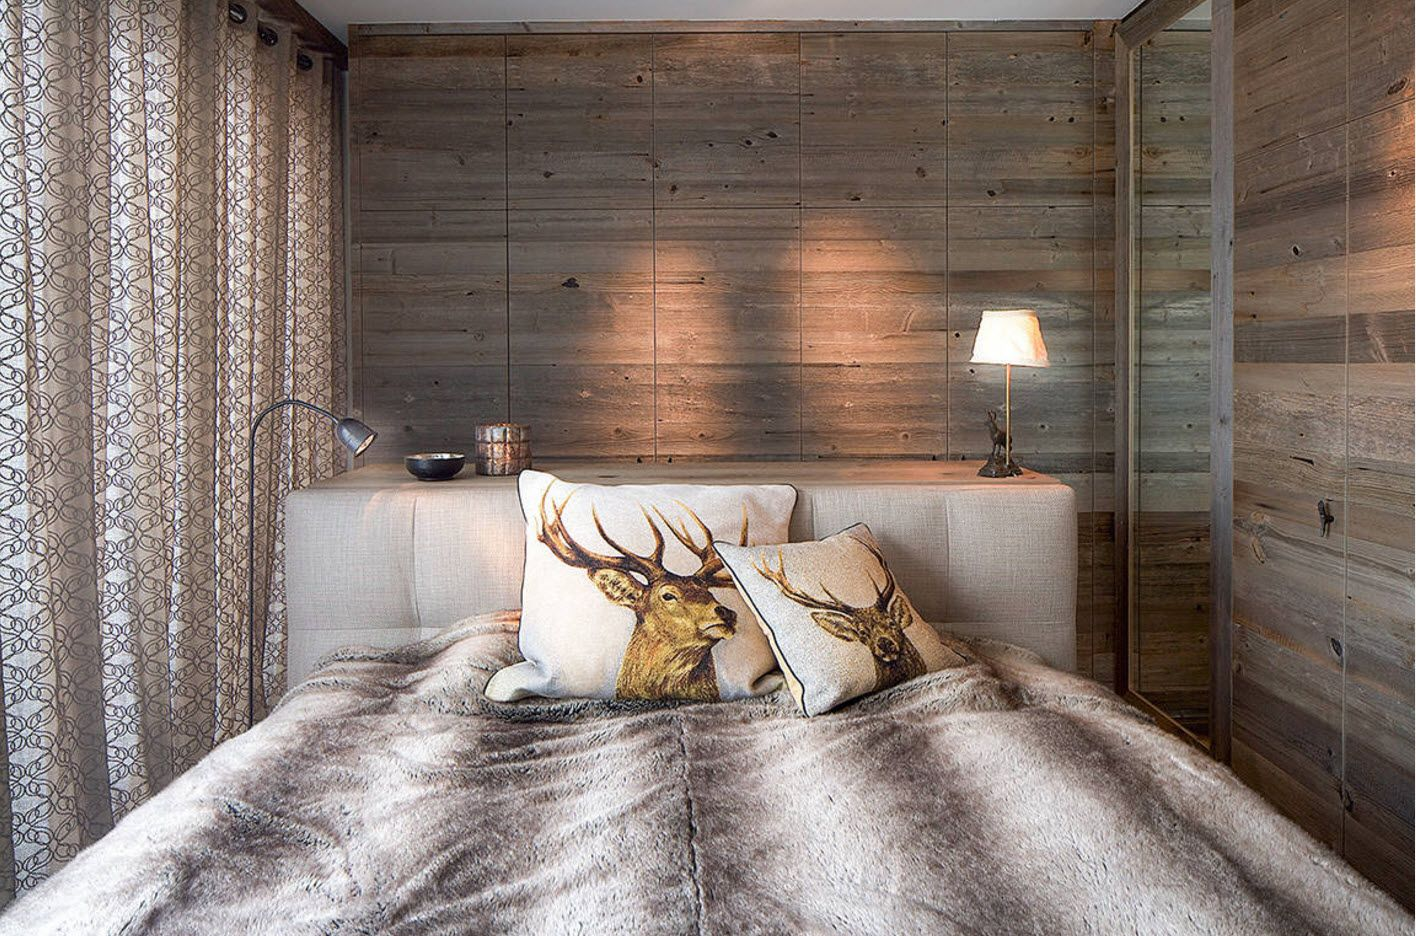 Another chic and luxurious wooden headboard